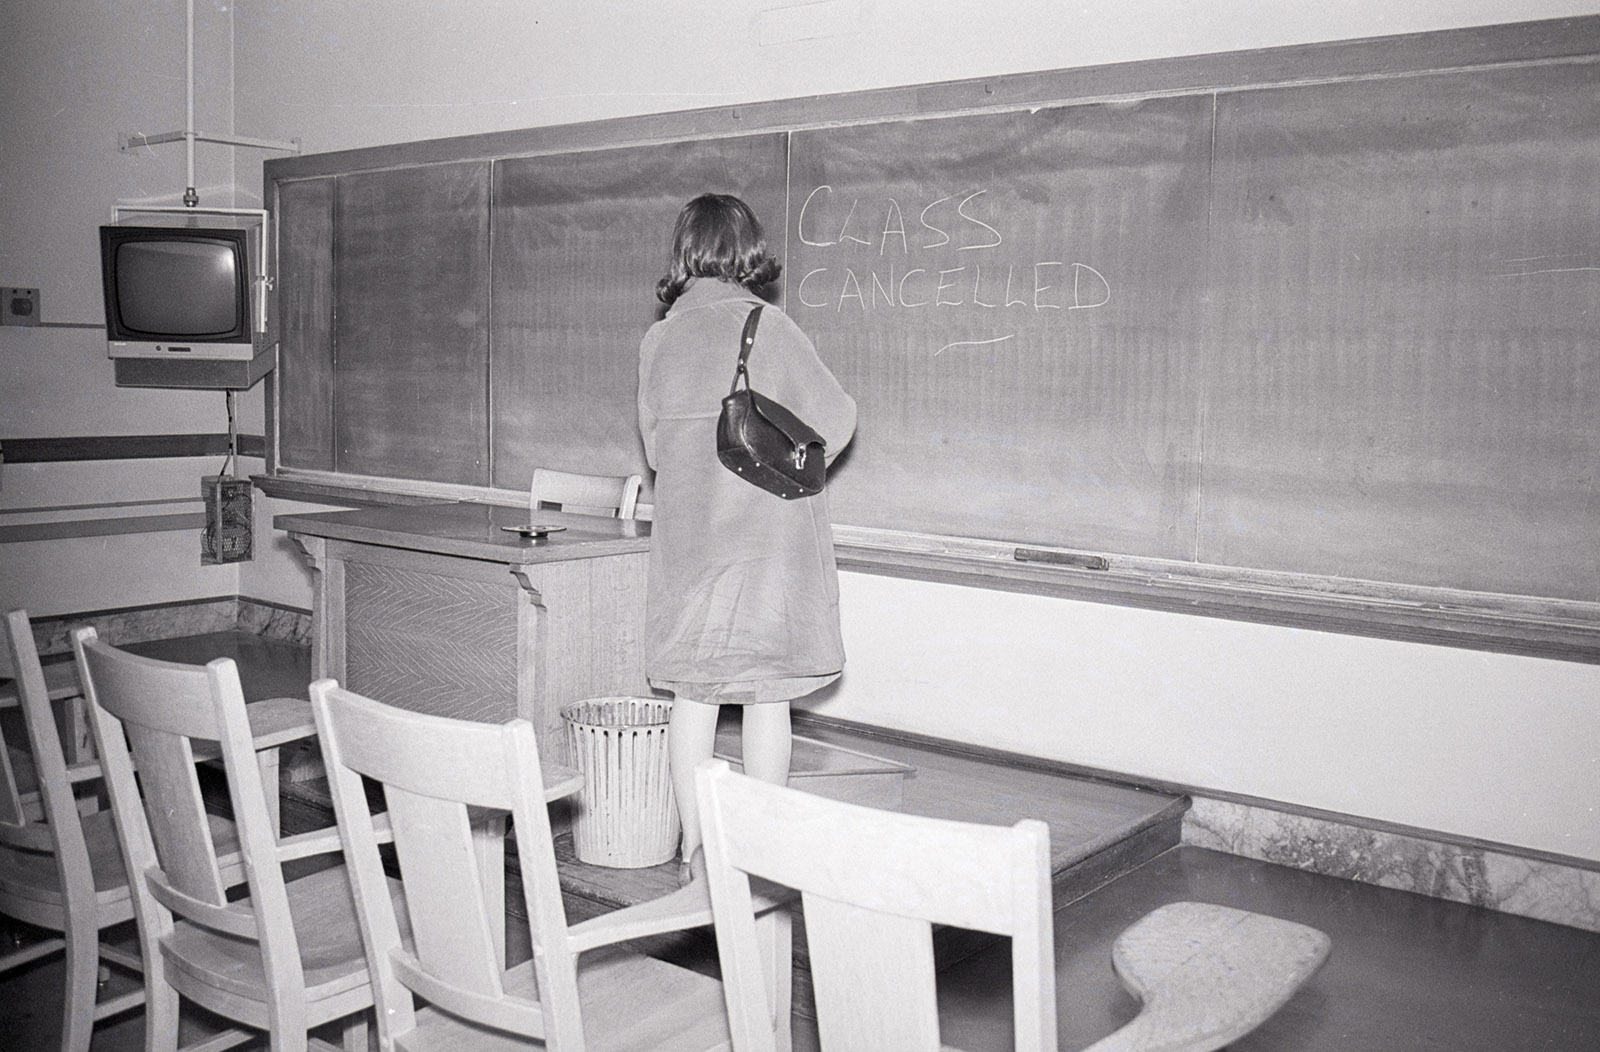 A University of California student stands in an empty classroom reading a notice of cancellation, Berkeley, 1964